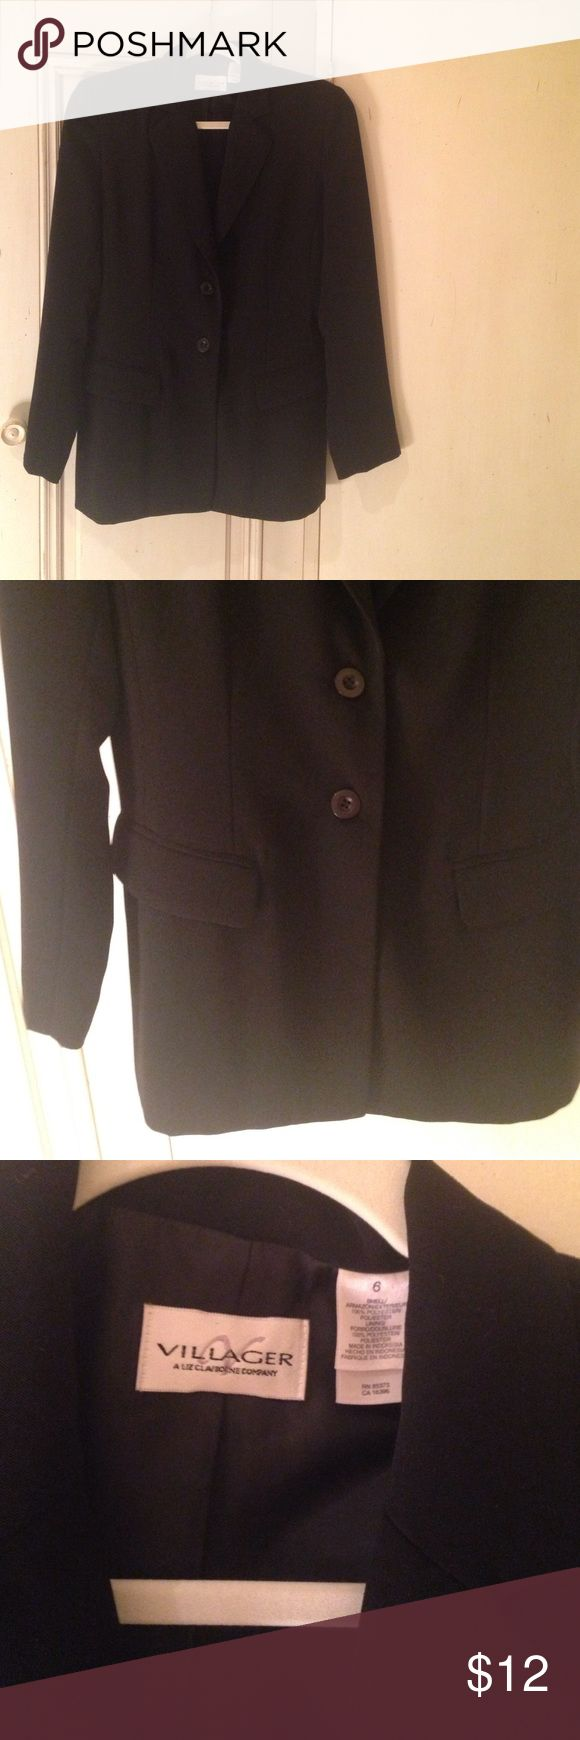 Villager/Ann Klein Blazer Like new, with shoulder pads.  Any questions, just ask! Ann Klein  Jackets & Coats Blazers